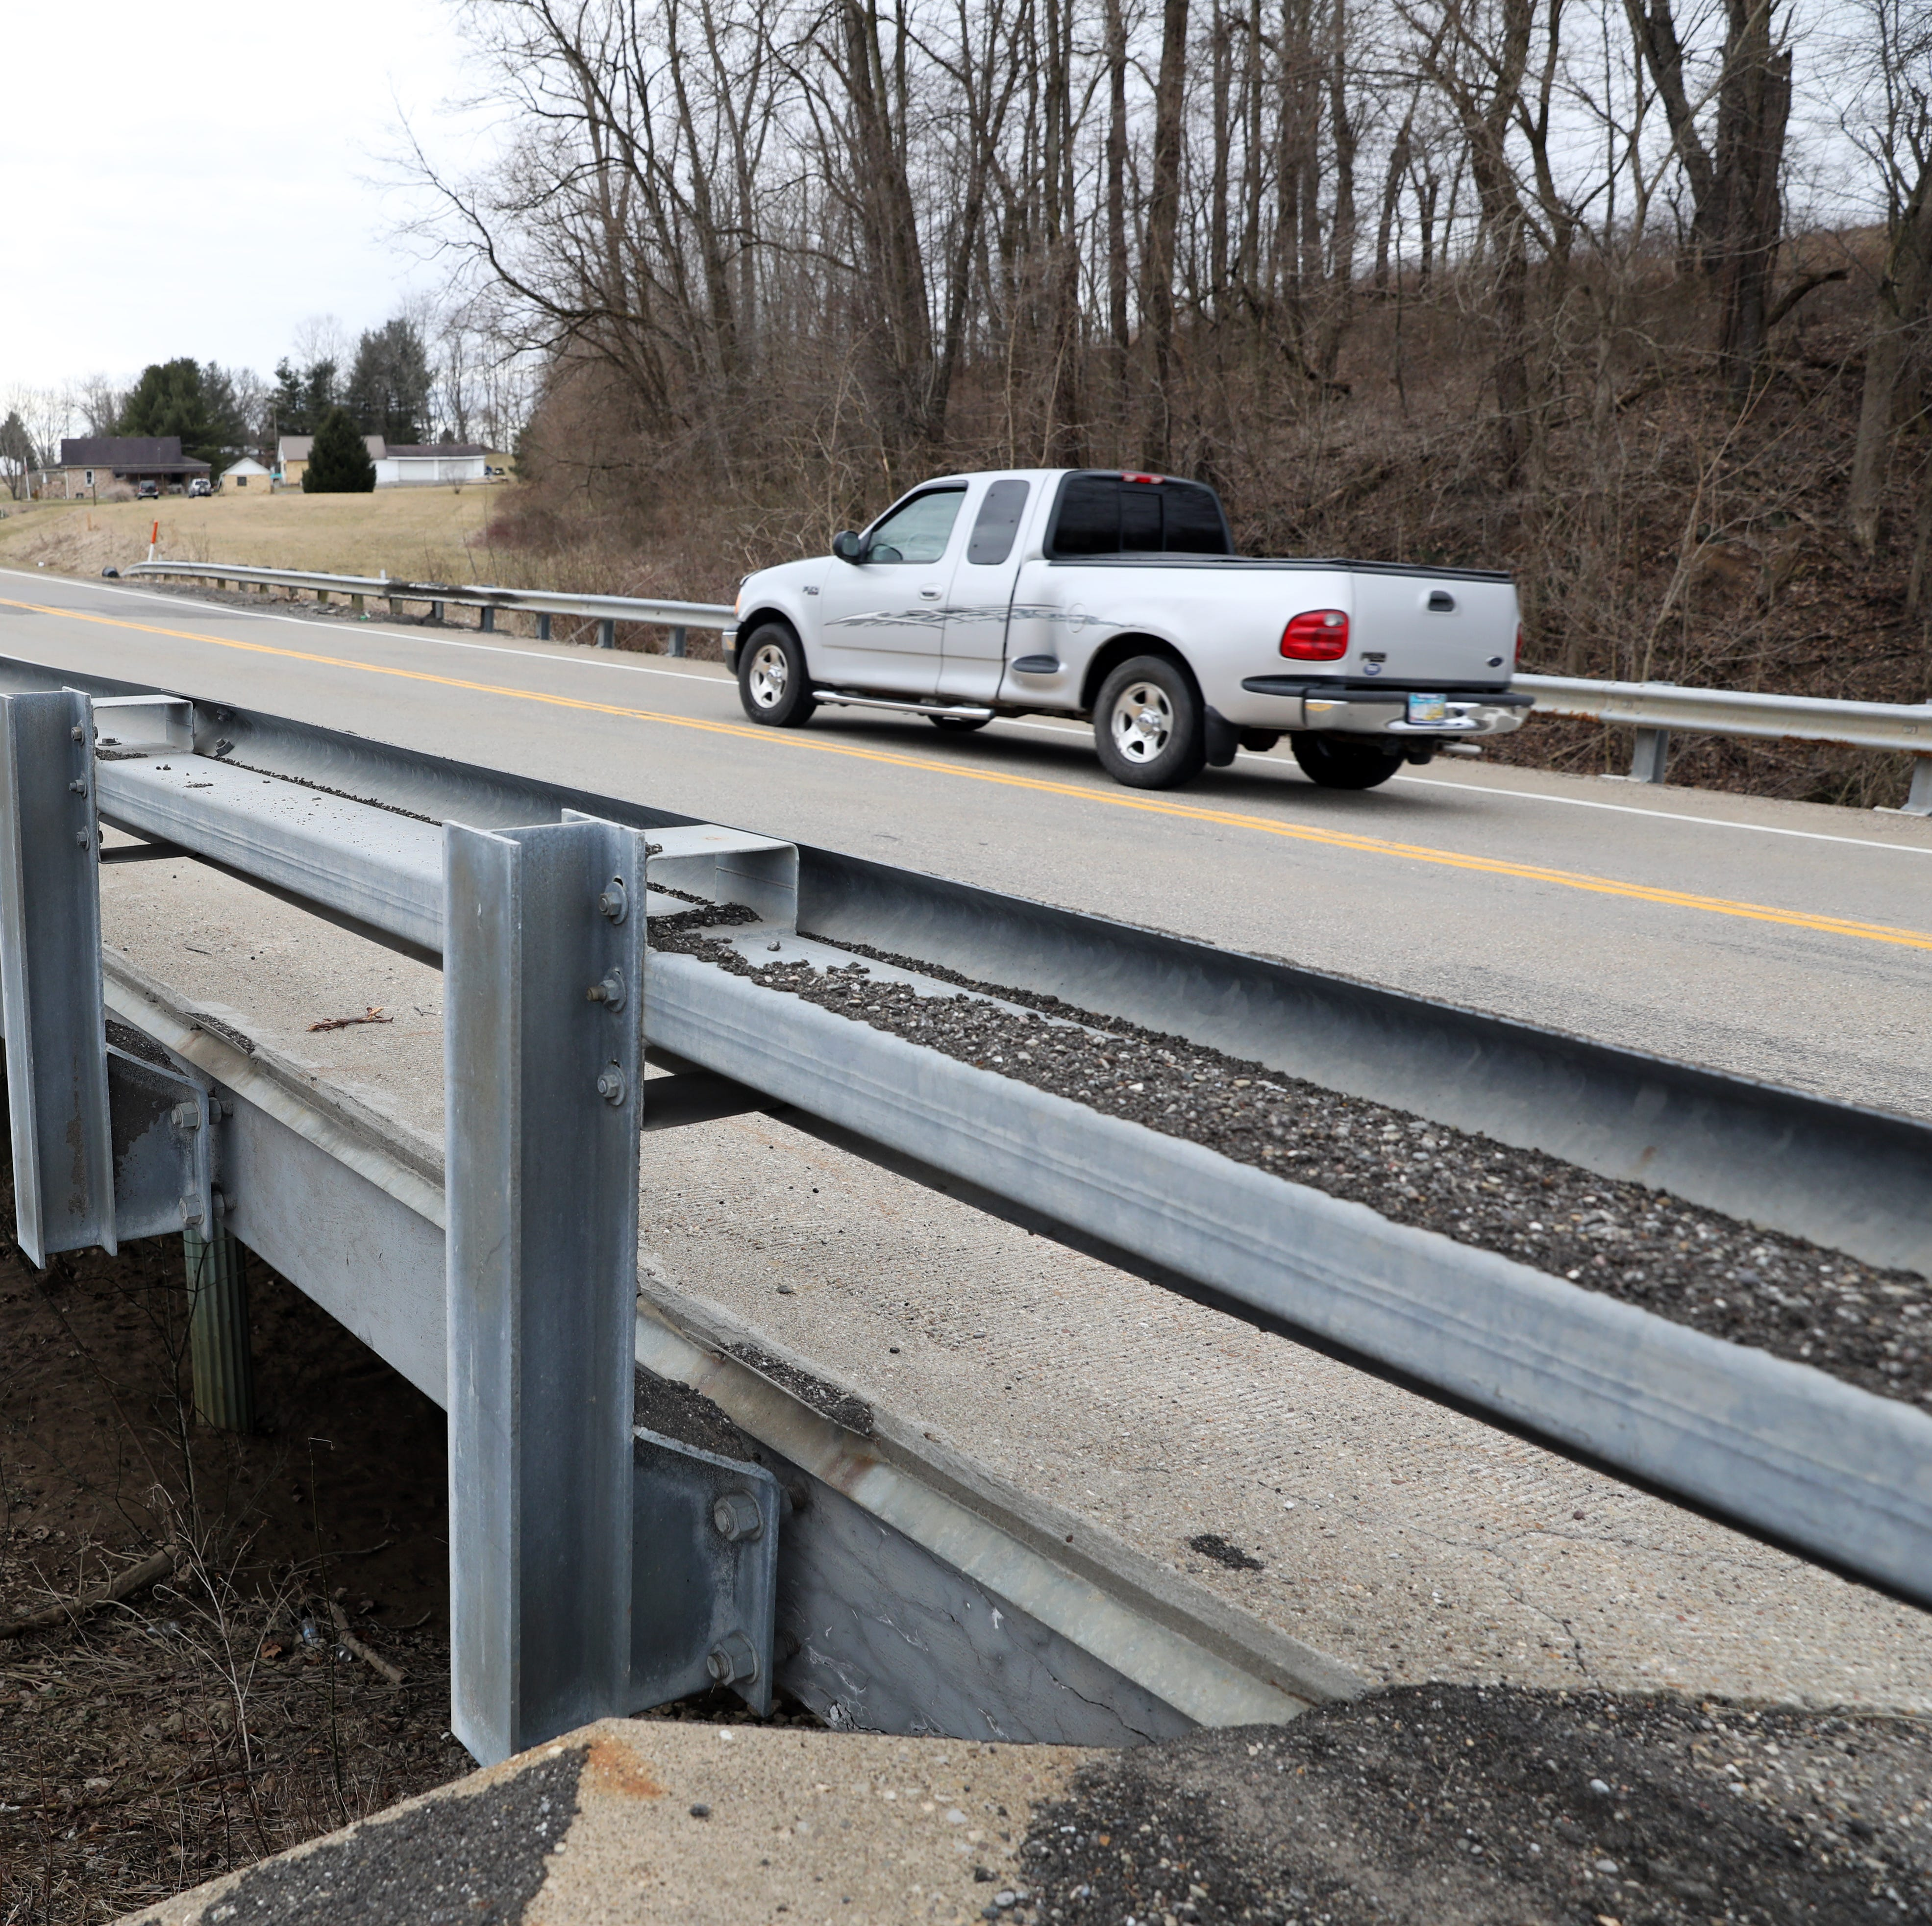 Three Rivers Bridge remains top county project for ODOT